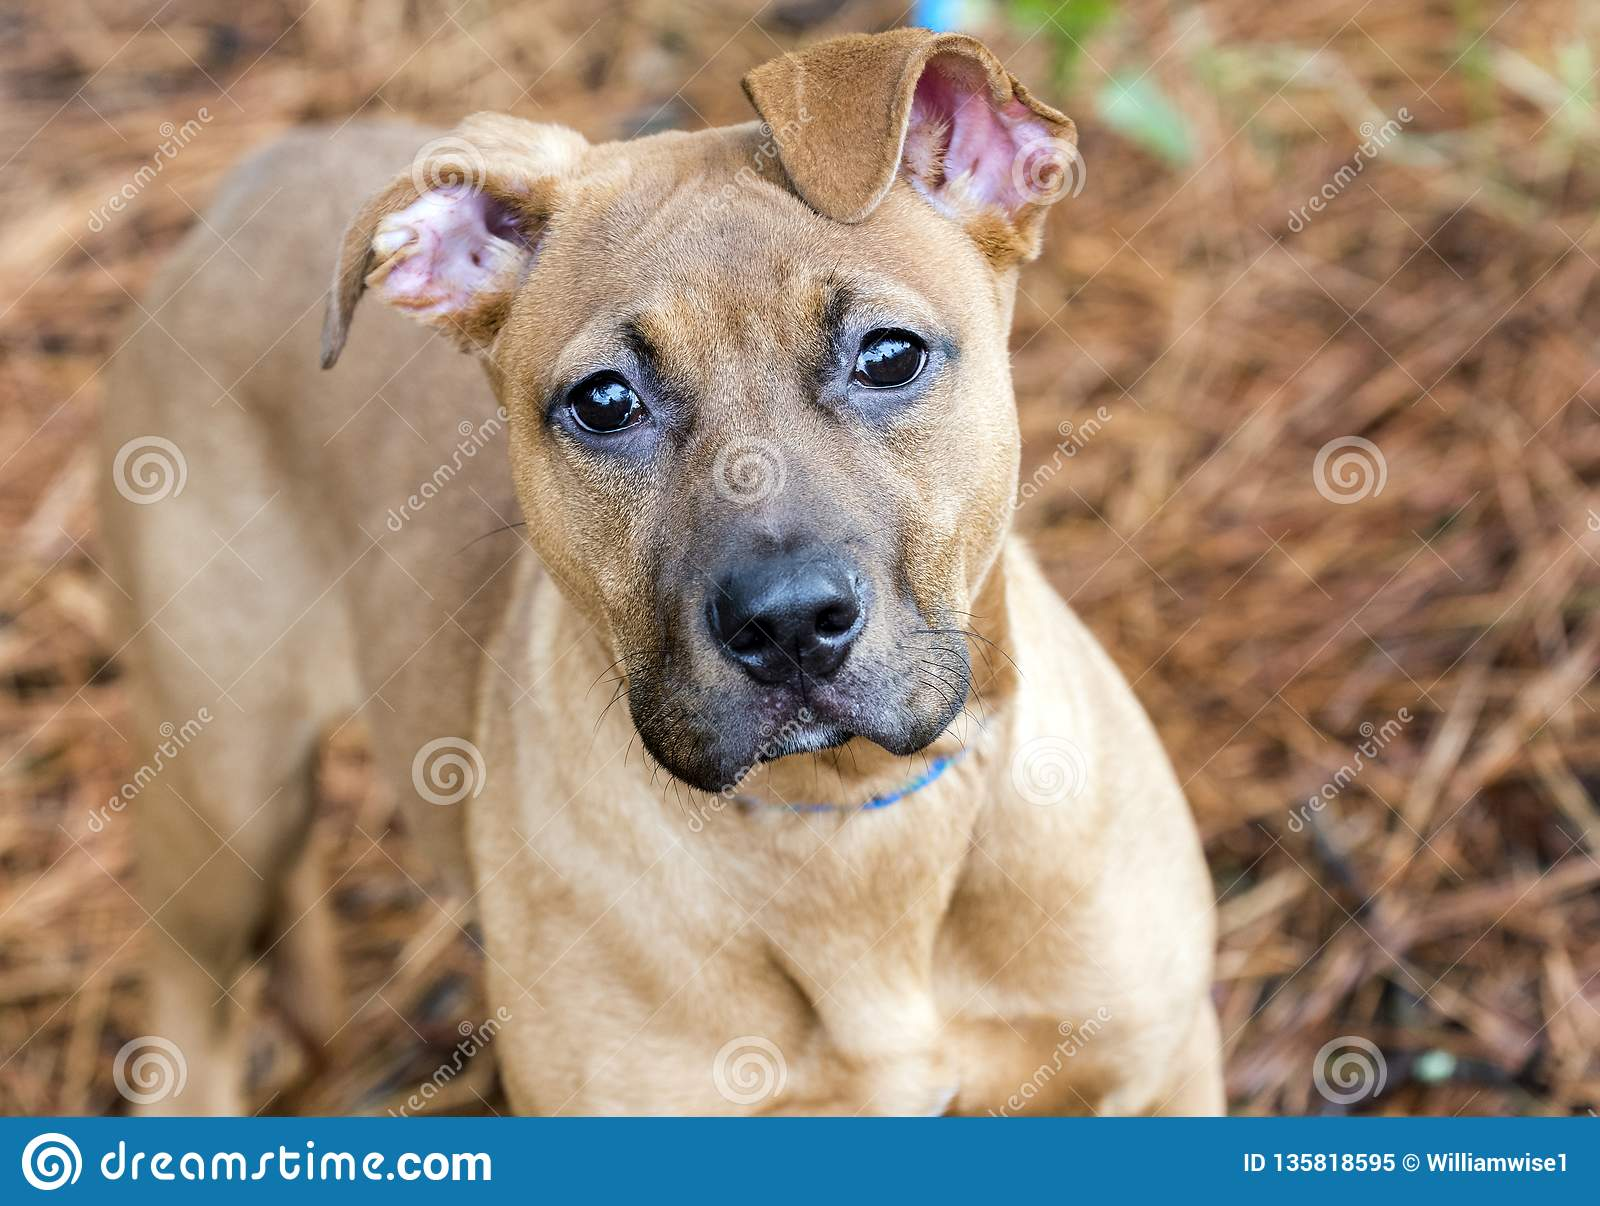 Red Pitbull Puppy Dog Stock Image Image Of Outdoors 135818595